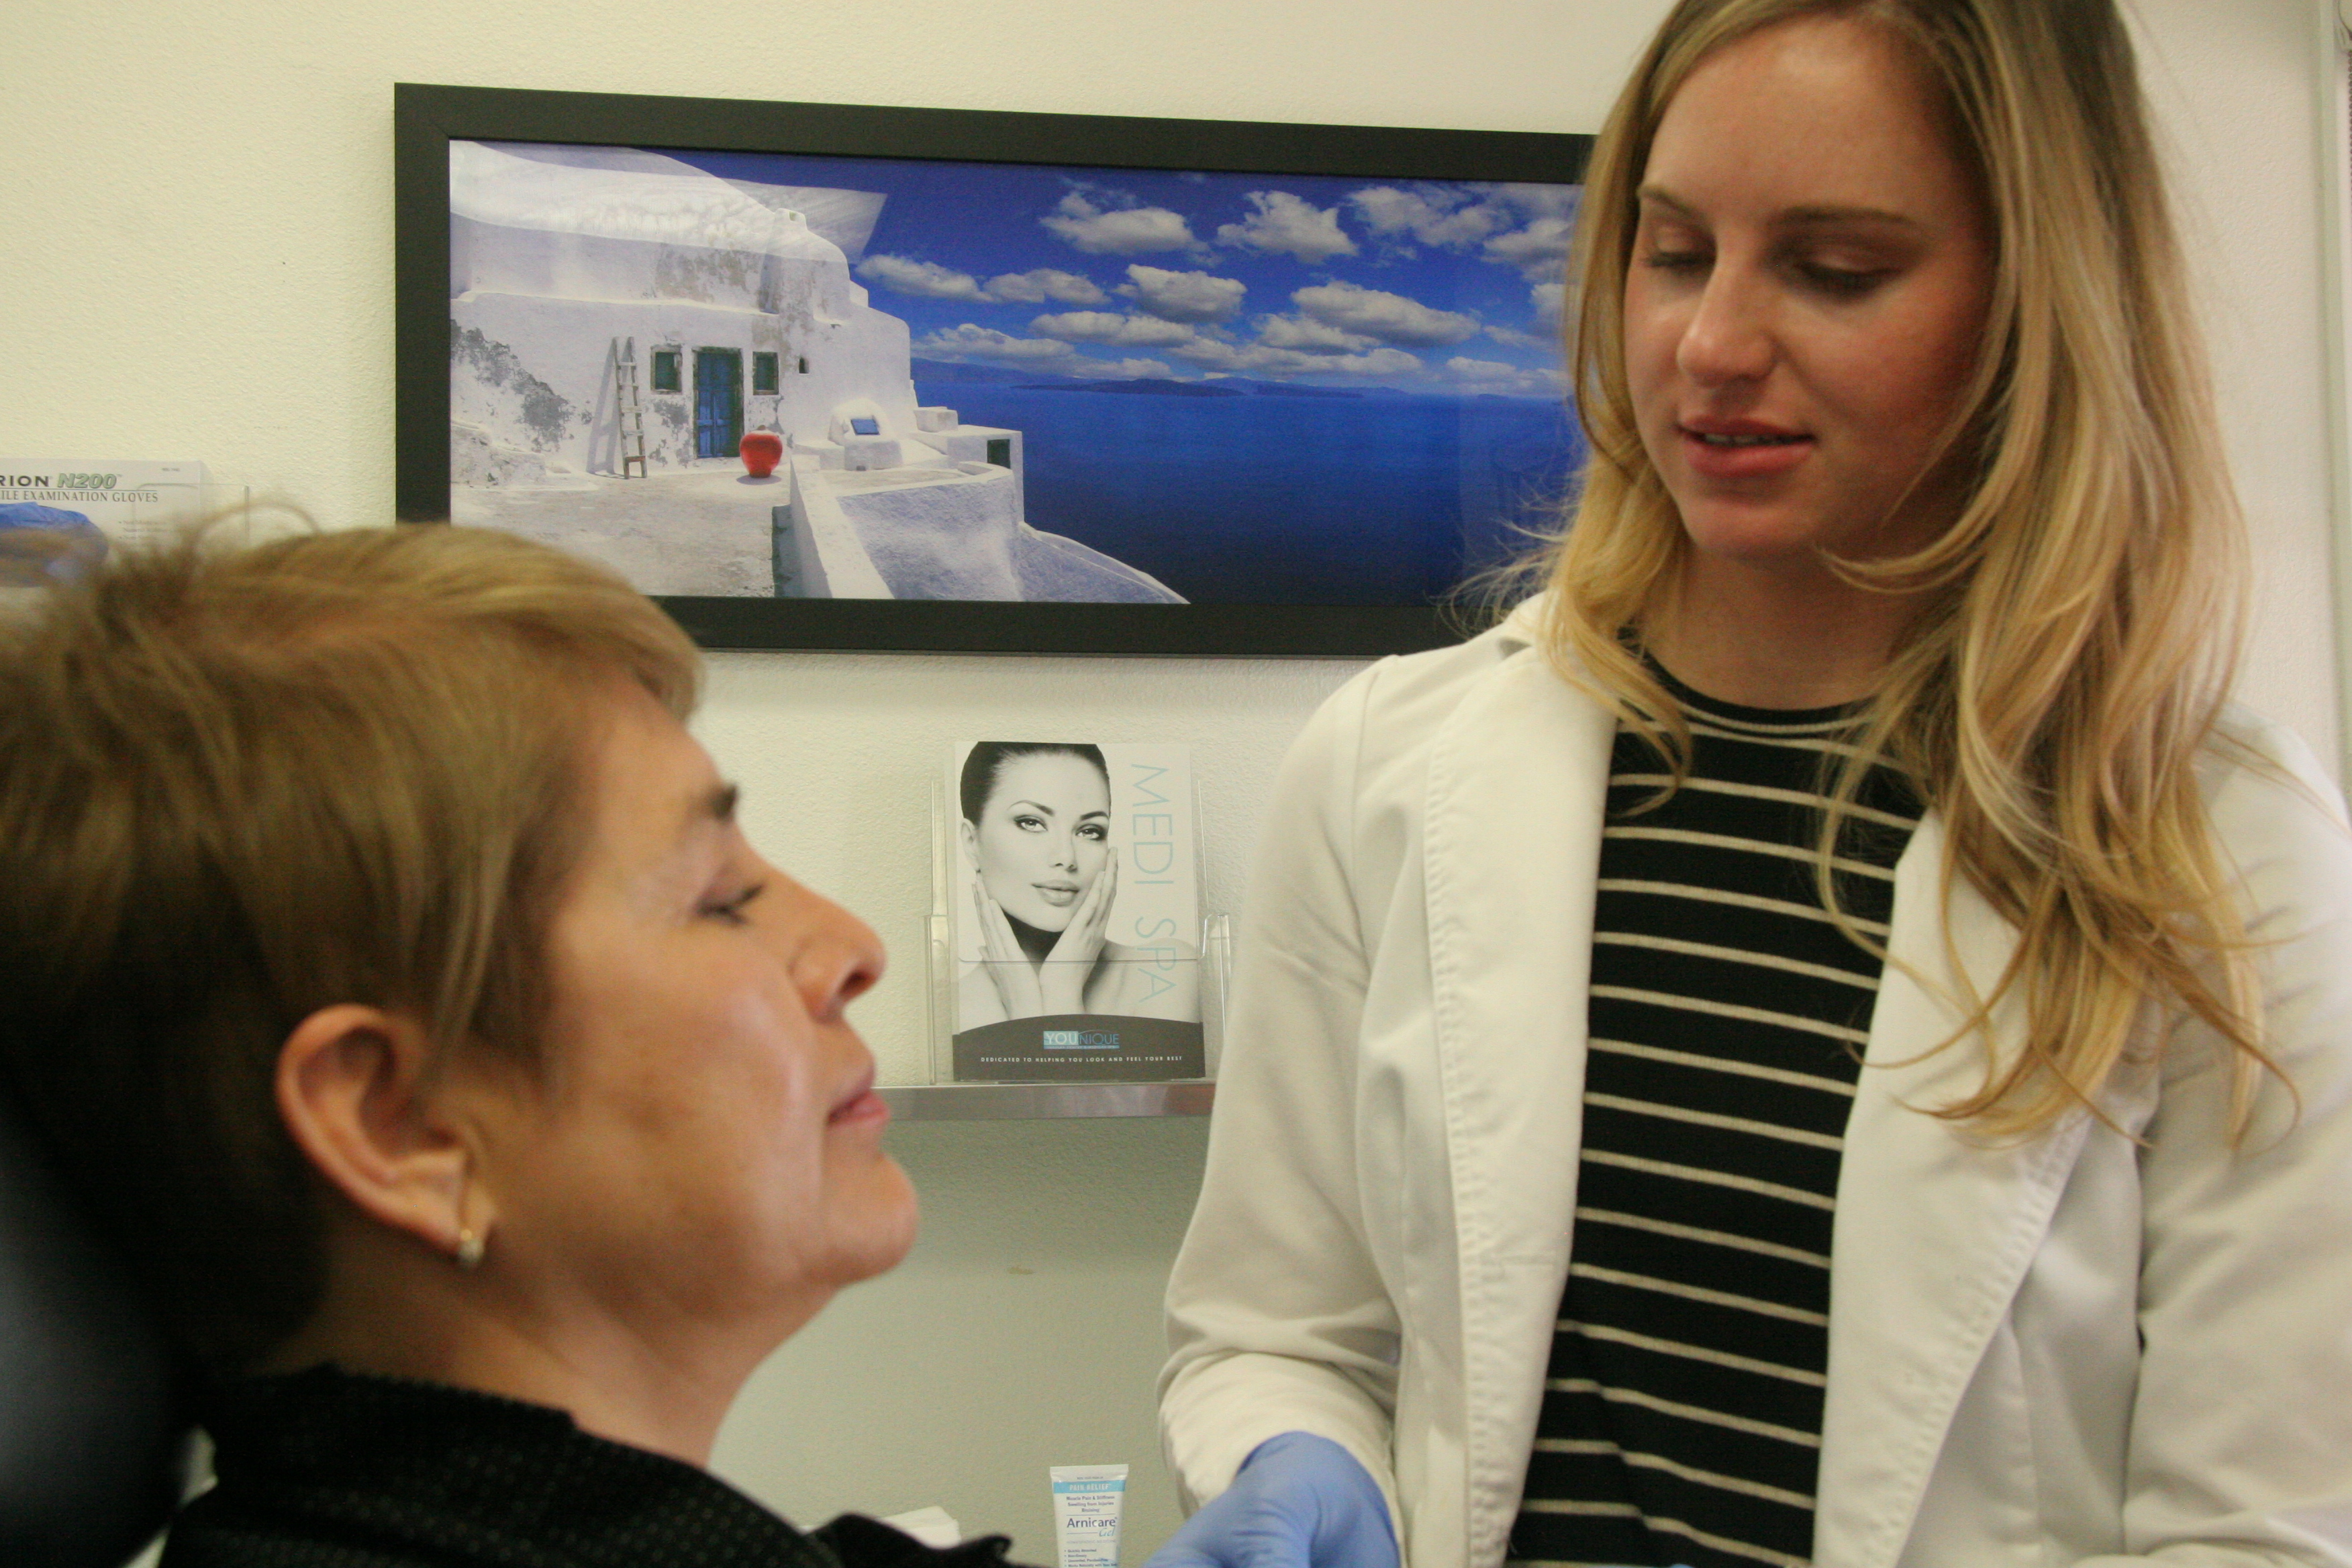 Physicians Assistant working with patient